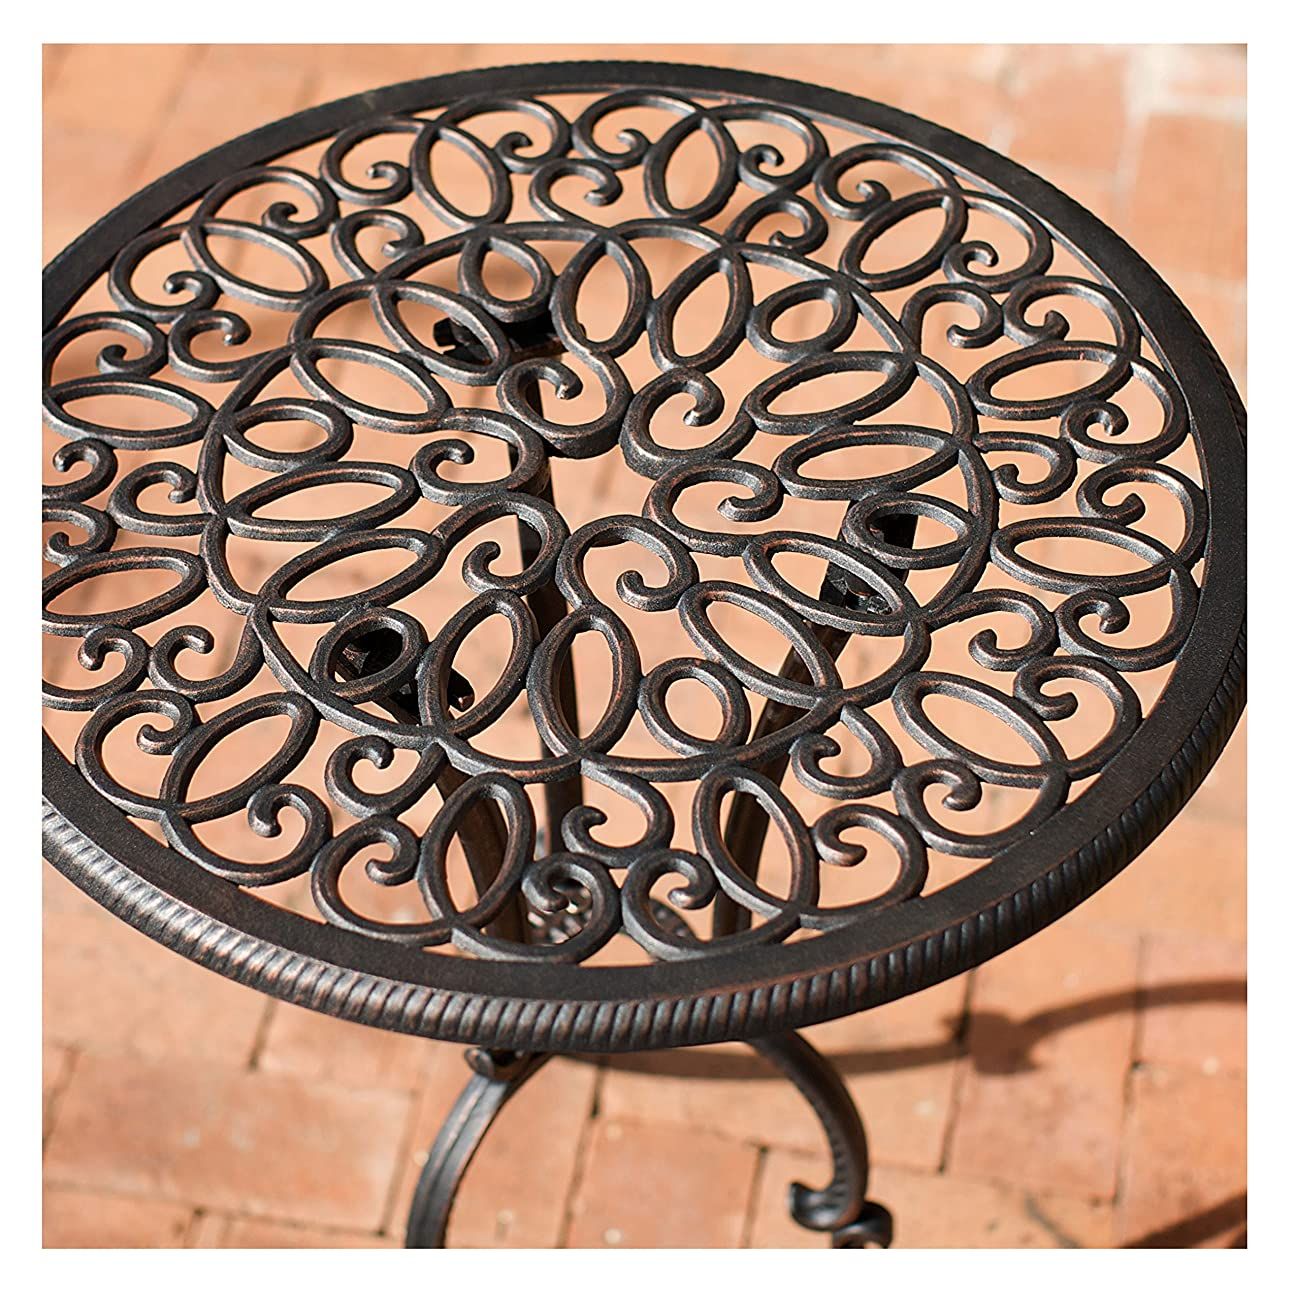 French Ironwork Cast Aluminum Outdoor Patio 3 Piece Bistro Set in Antique Copper Finish - 2 Chairs and 1 Table 2